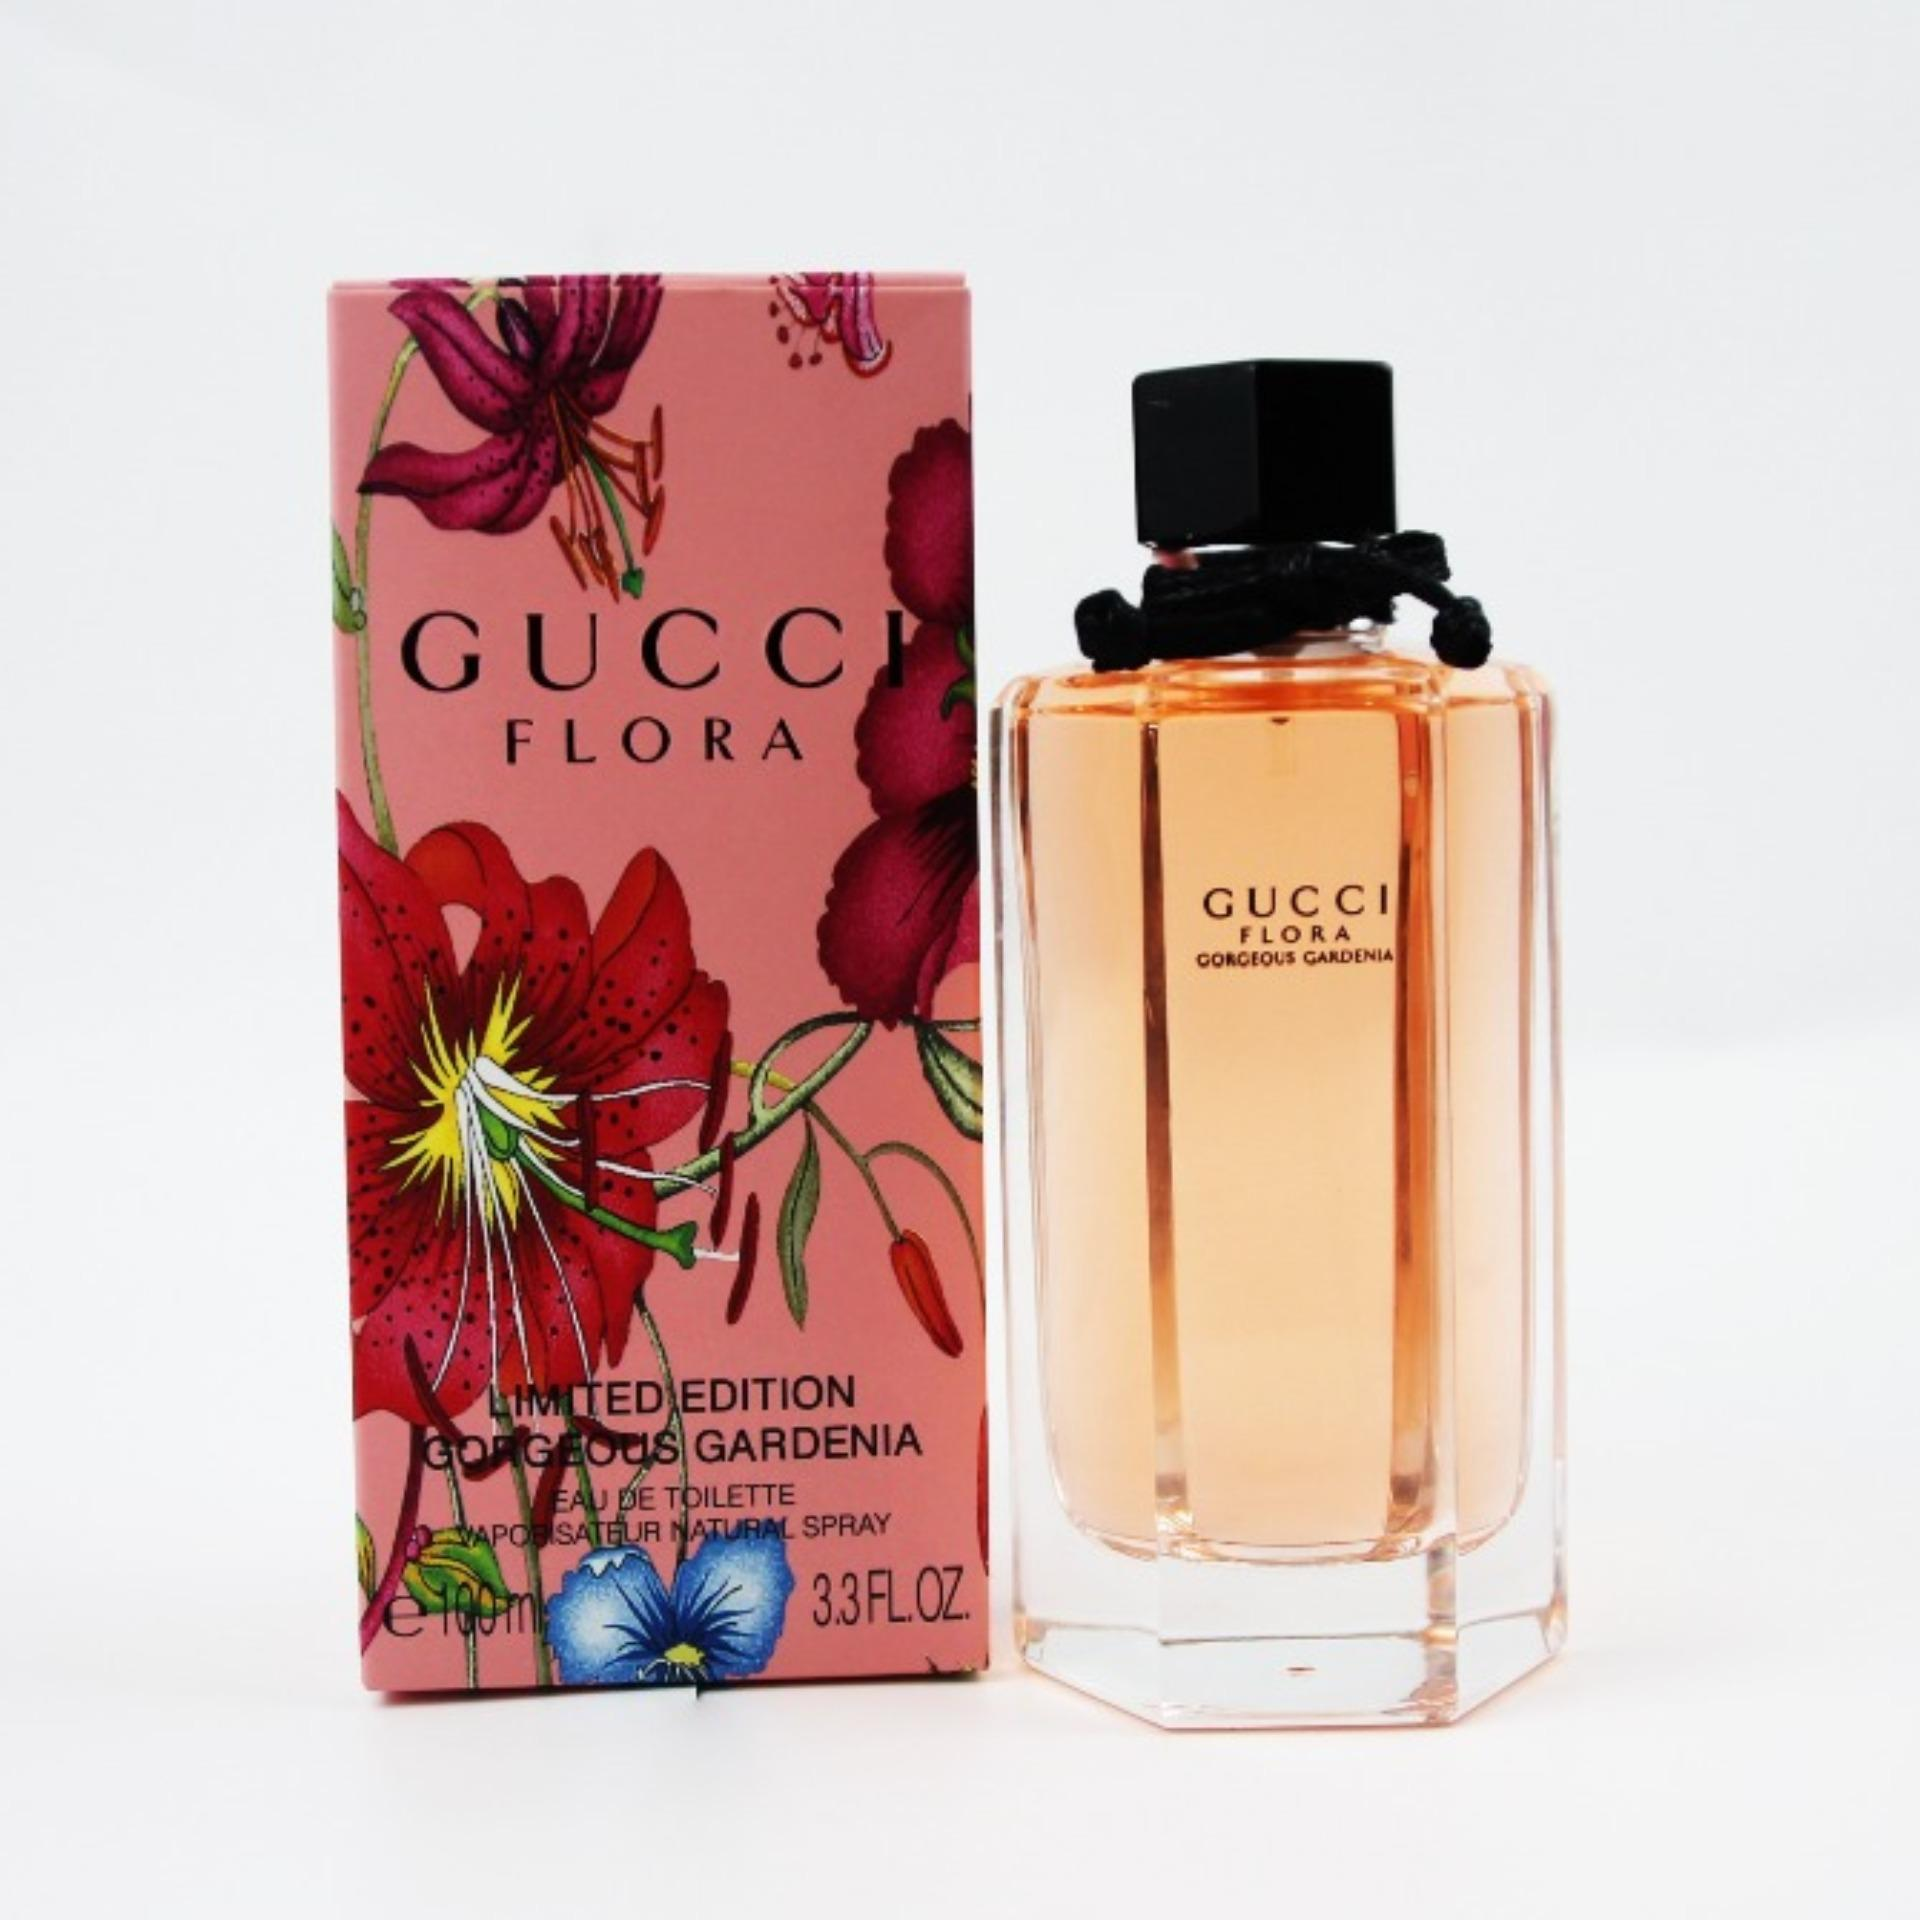 f0d4854ec Gucci Flora Limited Edition Gorgeous Gardenia For Women Edt 100ml